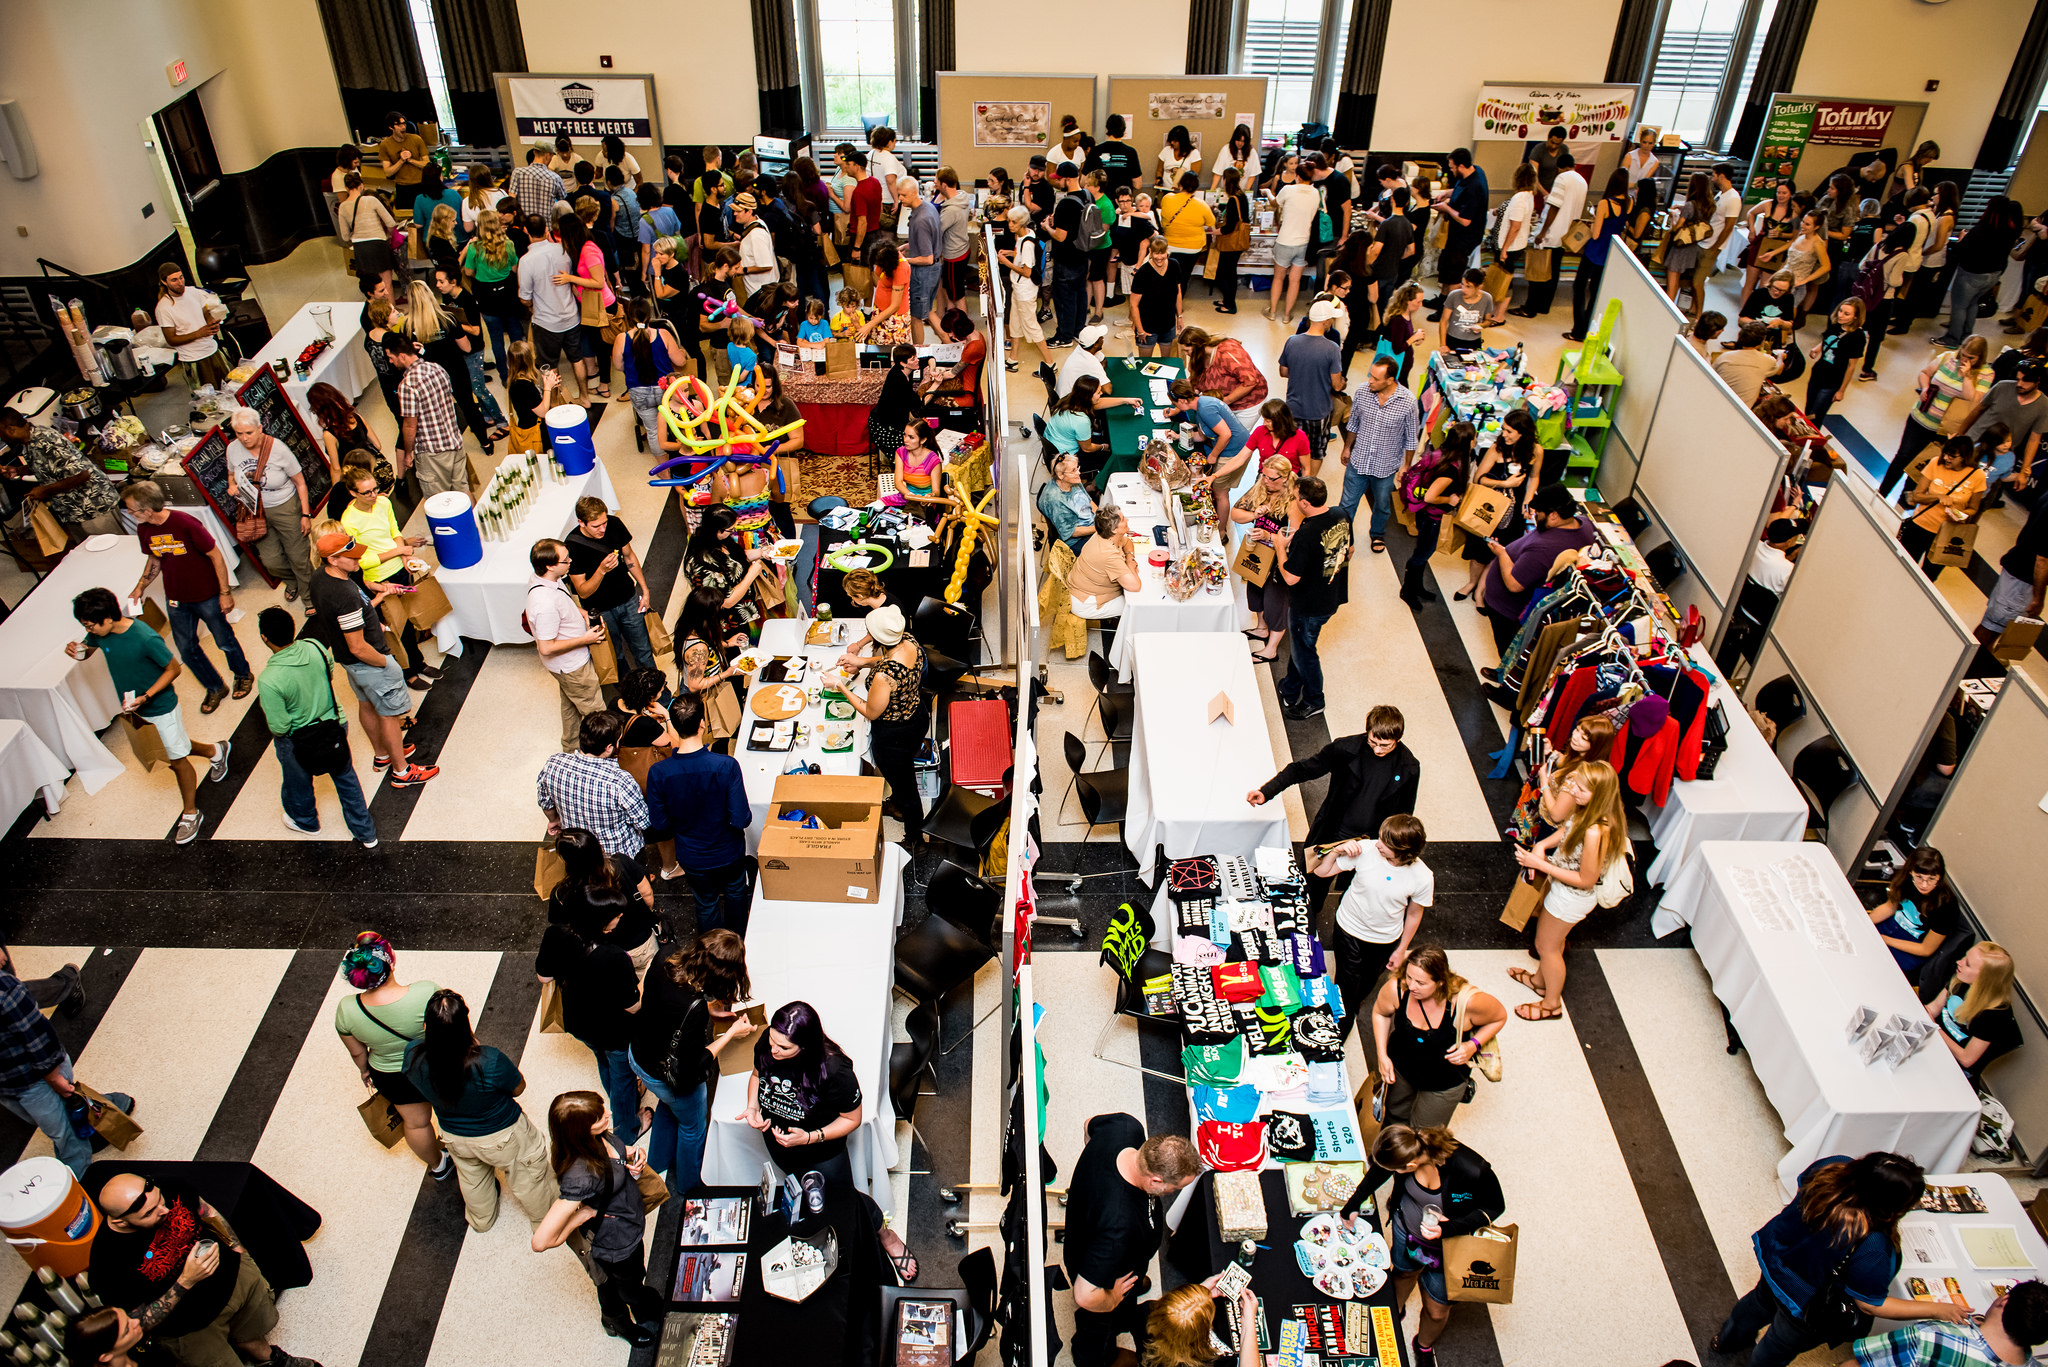 The exhibitor hall at Twin Cities Veg Fest 2014